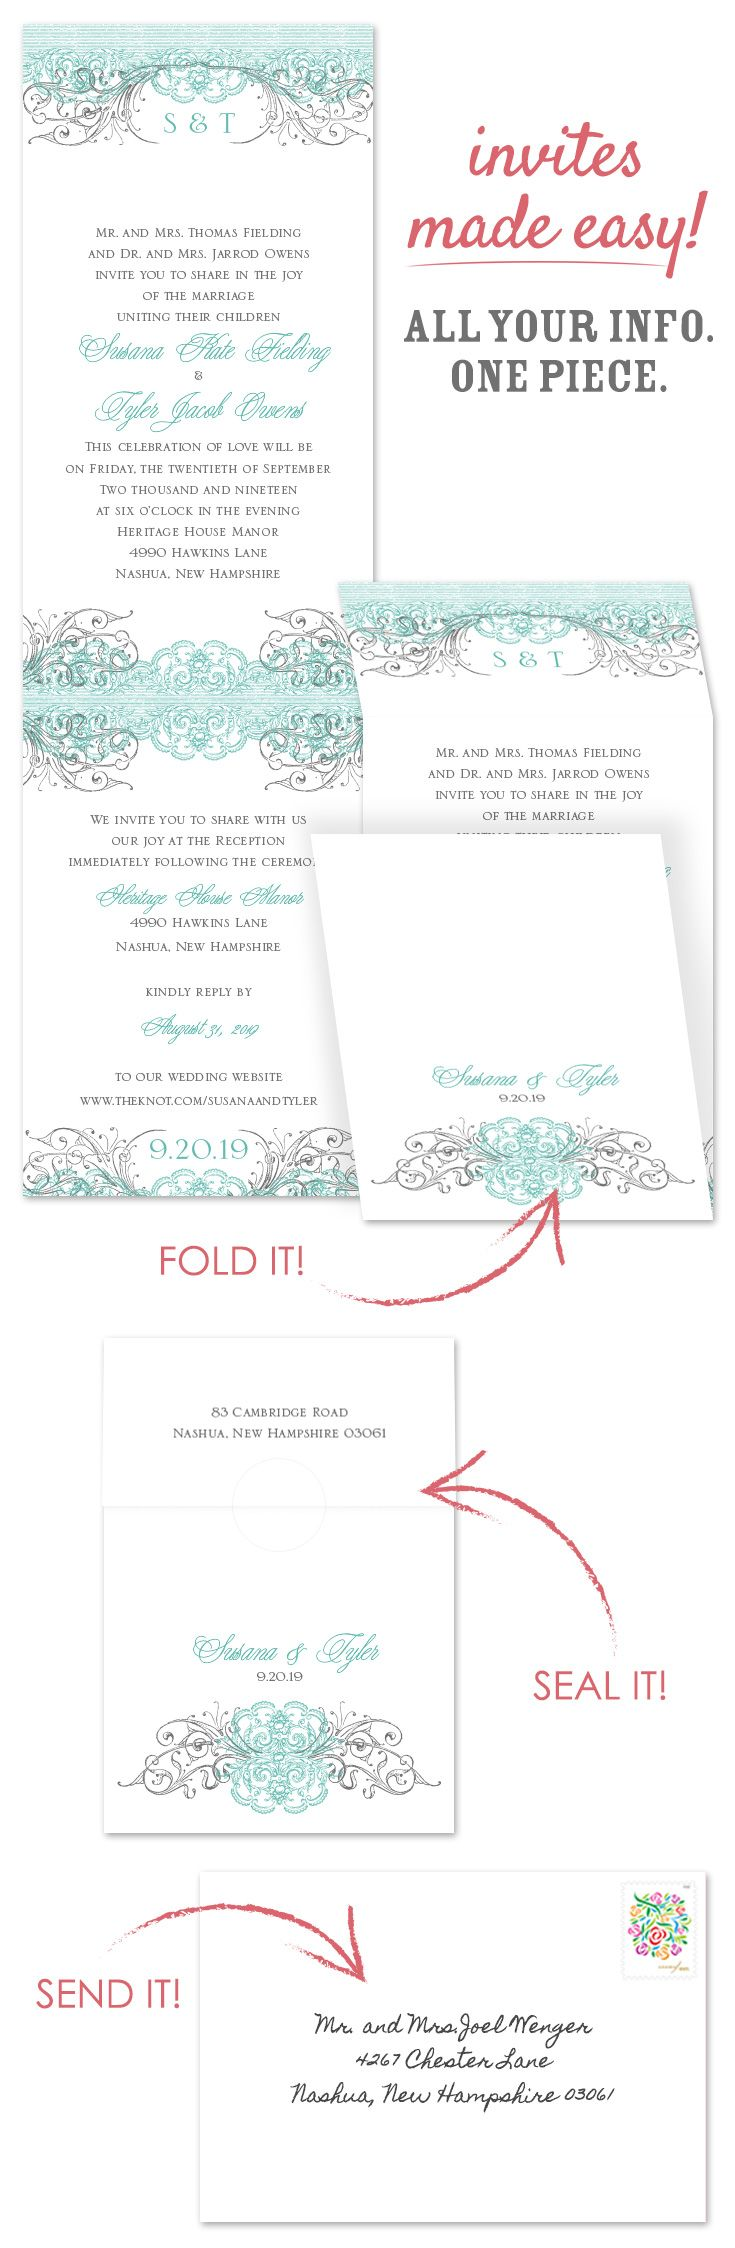 Wedding All In One Wedding Invitations 17 best images about affordable wedding invitations on pinterest beyond beautiful invitation with online reply in one piecewedding stationerywedding invitationsall